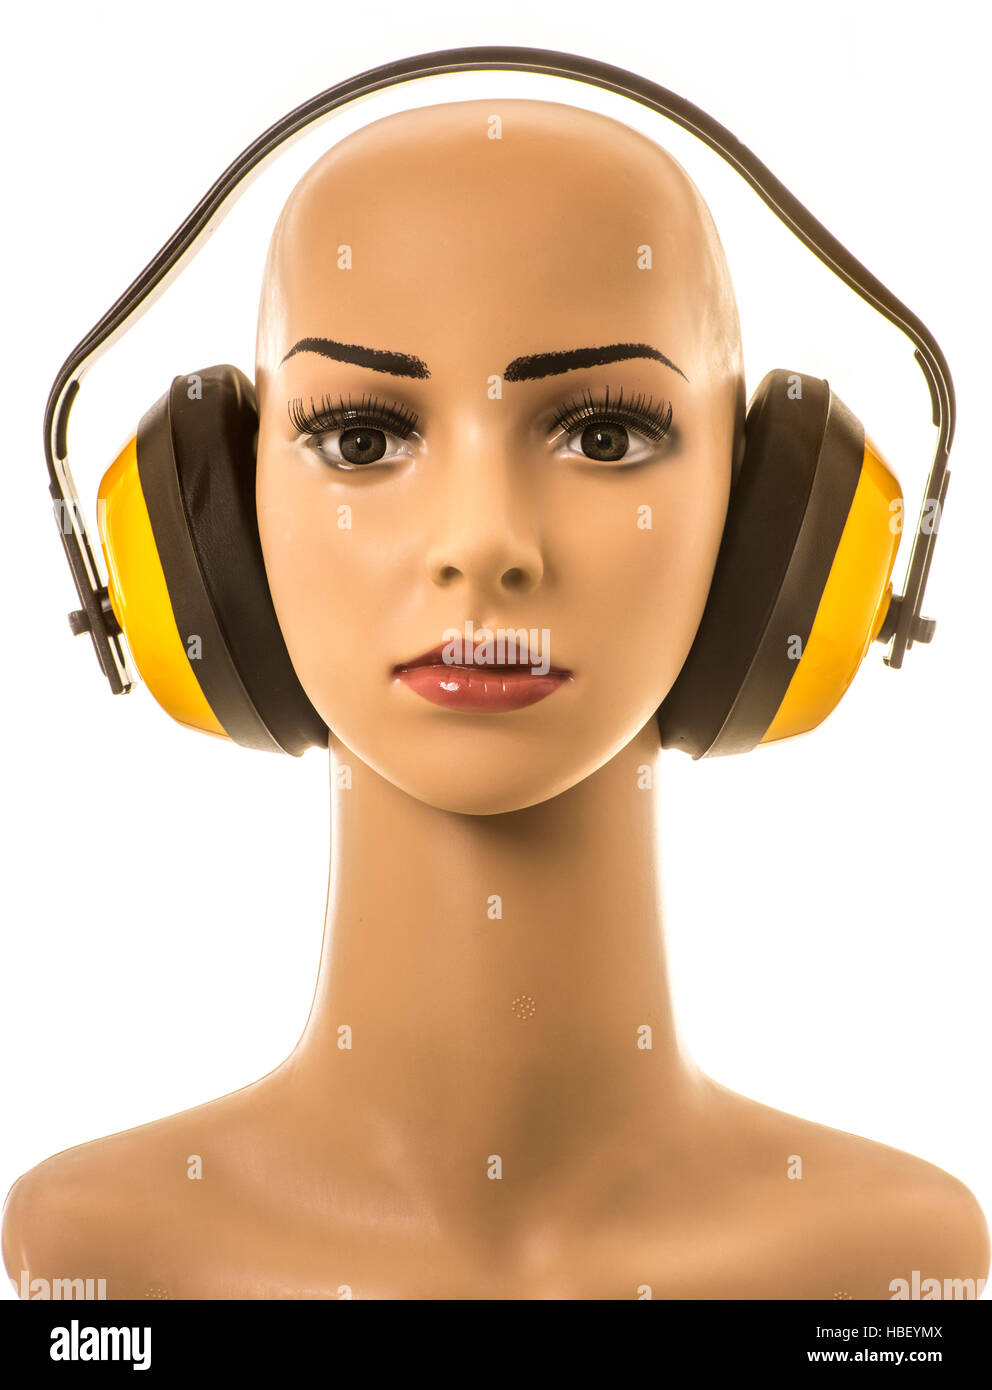 Mannequin wearing yellow ear defenders for hearing protection. - Stock Image